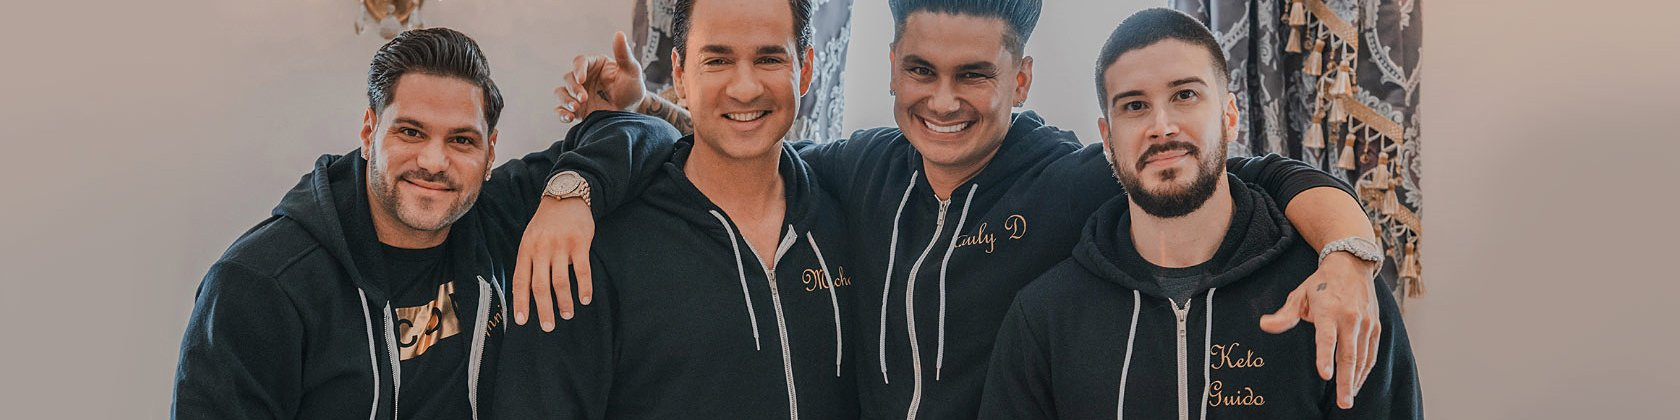 Custom Sweatsuits from Jersey Shore The Situation